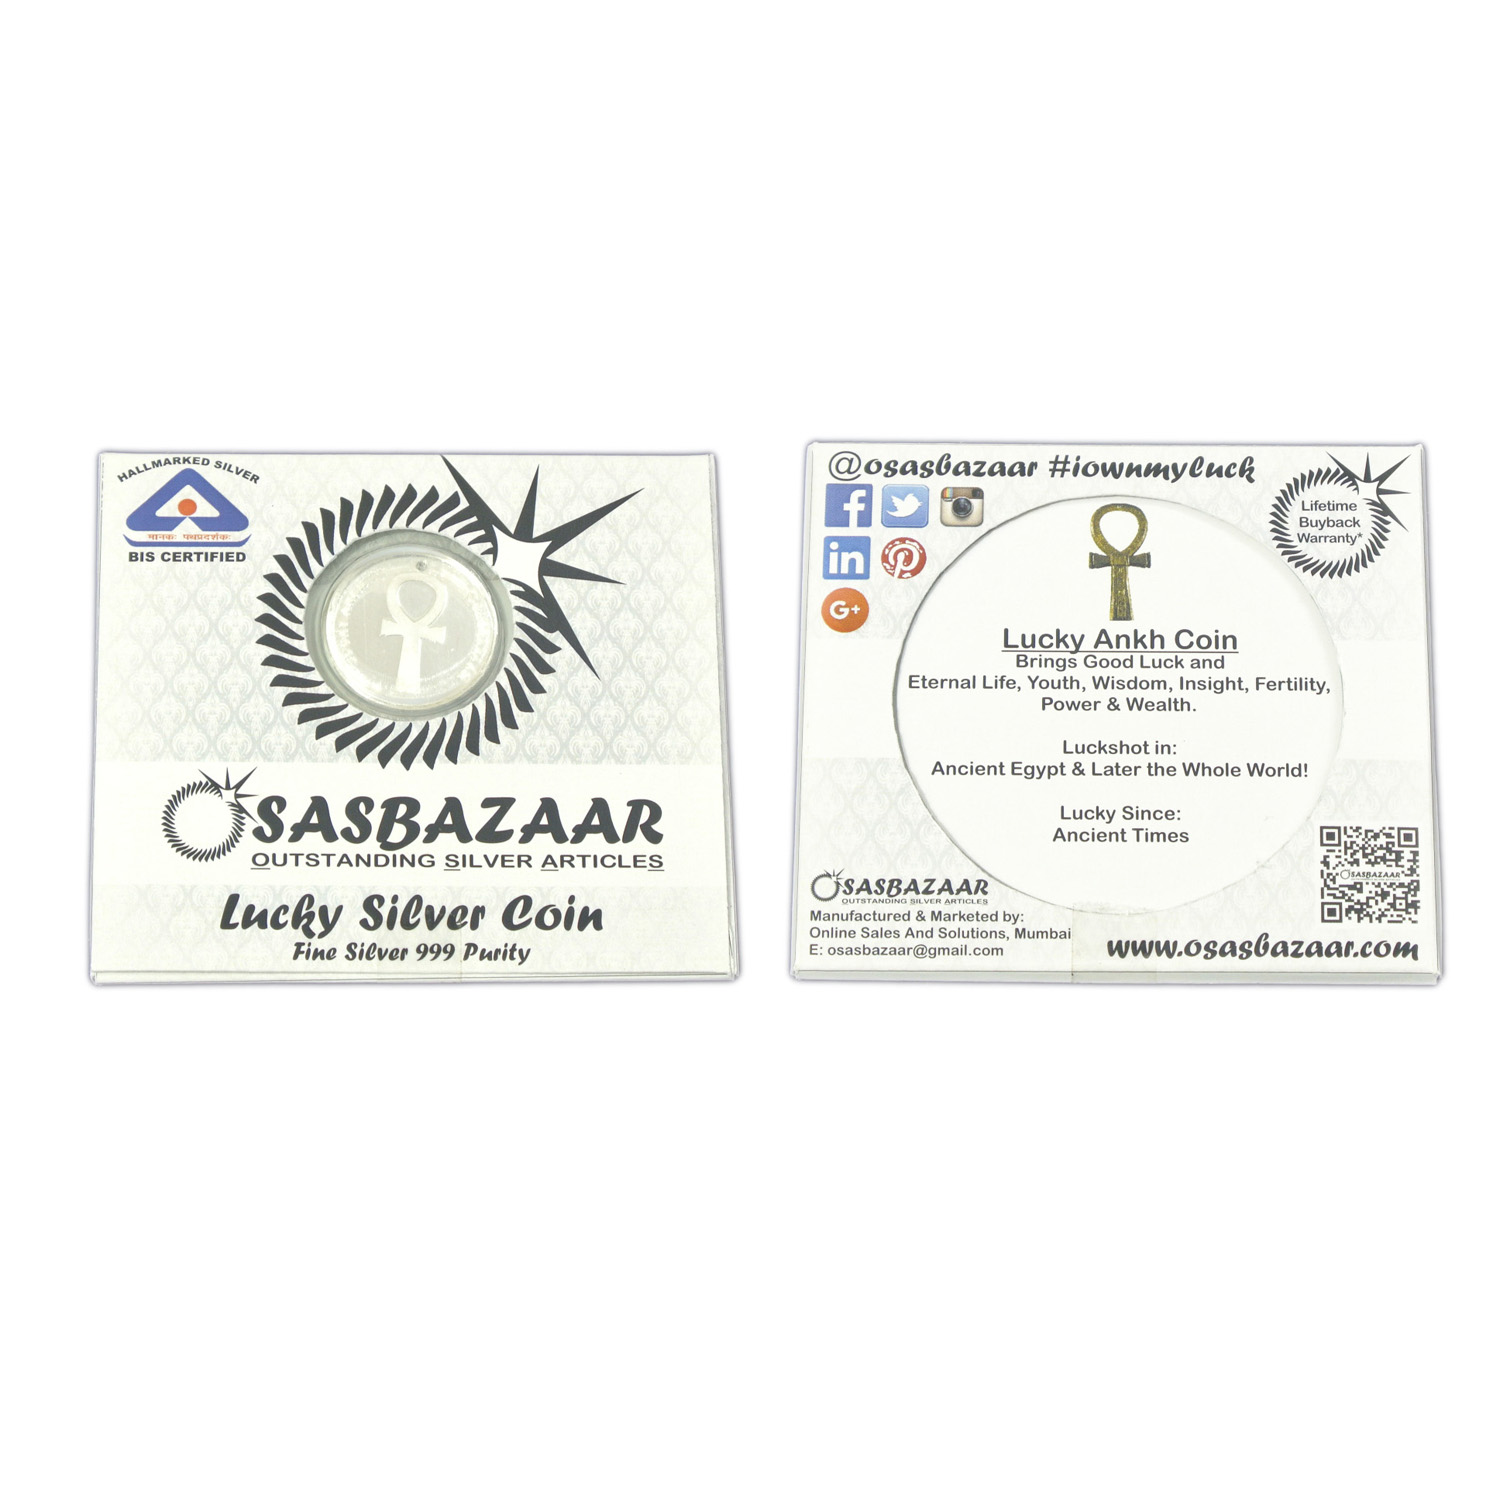 Silver Lucky Ankh Coin Packaging - Front and Back